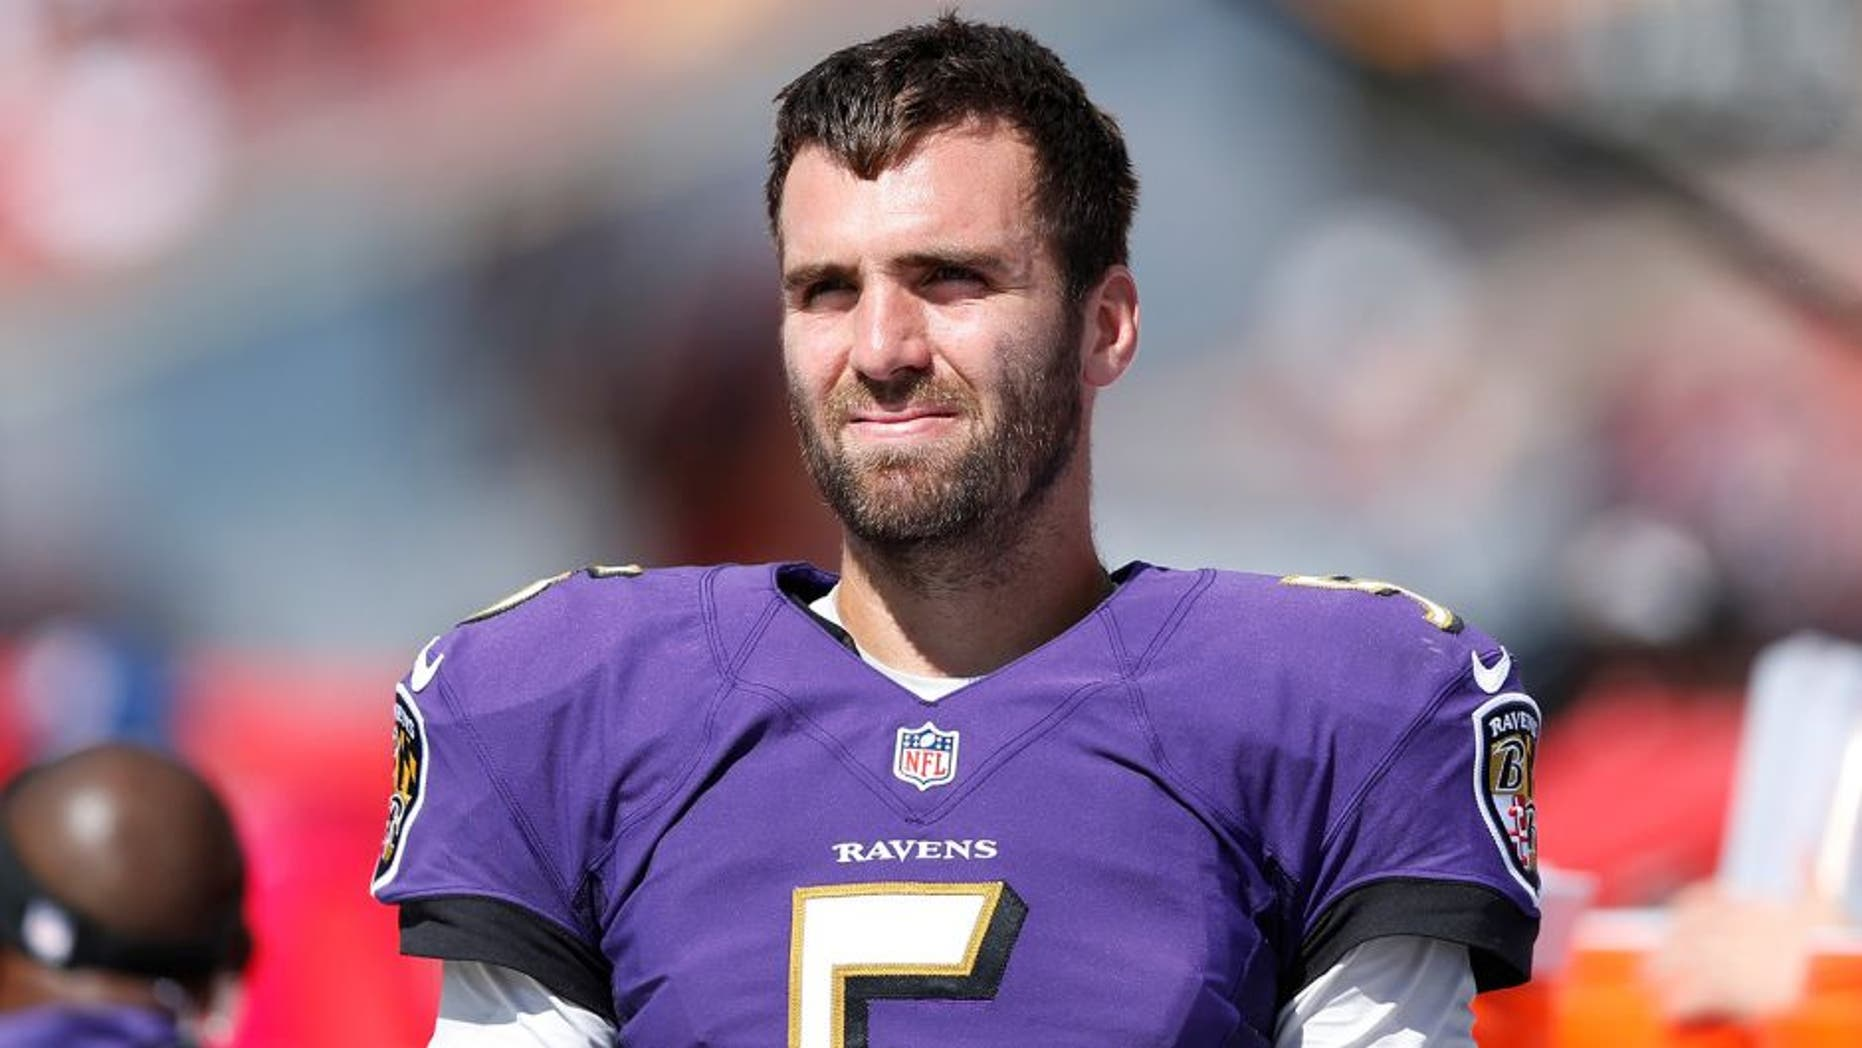 TAMPA, FL - OCTOBER 12: Joe Flacco #5 of the Baltimore Ravens looks on against the Tampa Bay Buccaneers during the game at Raymond James Stadium on October 12, 2014 in Tampa, Florida. The Ravens defeated the Buccaneers 48-17. (Photo by Joe Robbins/Getty Images) *** Local Caption *** Joe Flacco